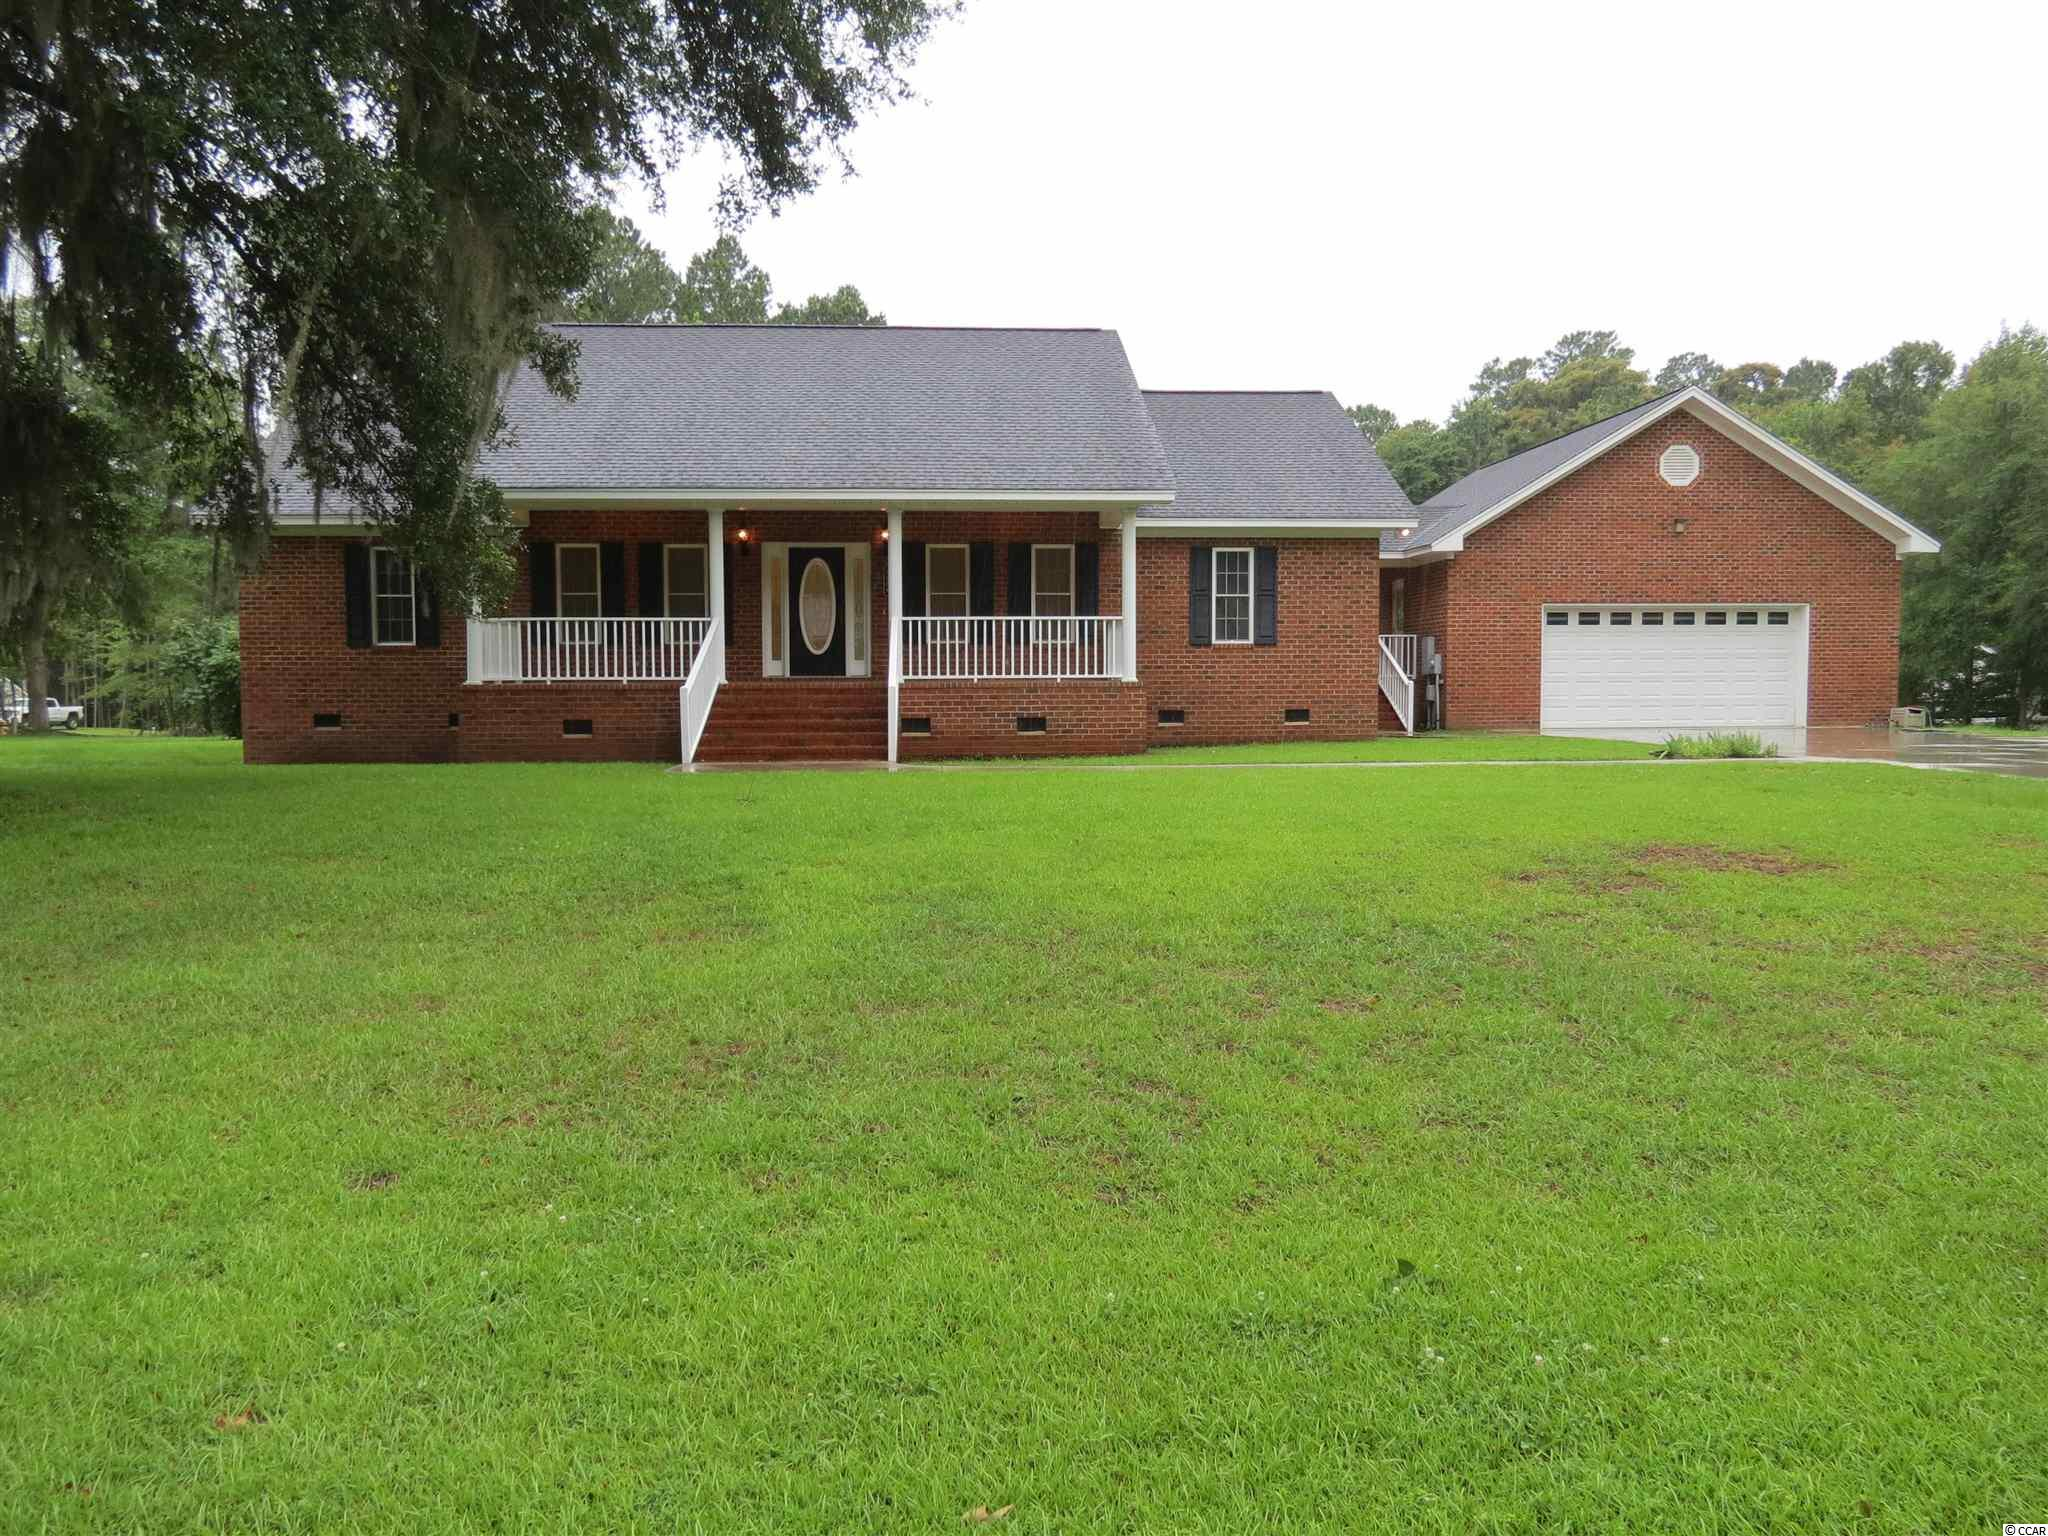 What a beautiful Lowcountry style all brick veneer home, single level, open floor plan, breezeway to a 2 car garage that has front and back loading capability and located on a spacious one acre lot. Tile floored front porch enhances the beauty as you enter the tiled entrance way that reveals a pocket door office, a formal dining room and a vaulted ceiling living area. Tiled floor kitchen with white cabinets, double ovens, smooth top range, GE refrigerator, recess lighting, breakfast bar plus breakfast nook with bay window. Oak hardwood floor Living area with gas log fireplace, 14 ft height ceiling, 2 ceiling fans and recess lighting. Oak hardwood floors in all bedrooms, tile floored baths, double walk-in closet in Owners suite, three storage closets with shelving in tiled floor laundry room. Other features include a 15.10x 11.9 screen porch, built in gun cabinet, irrigation system on a 85 ft well, 2 car garage measuring 29.3x31.3 and a back patio area.